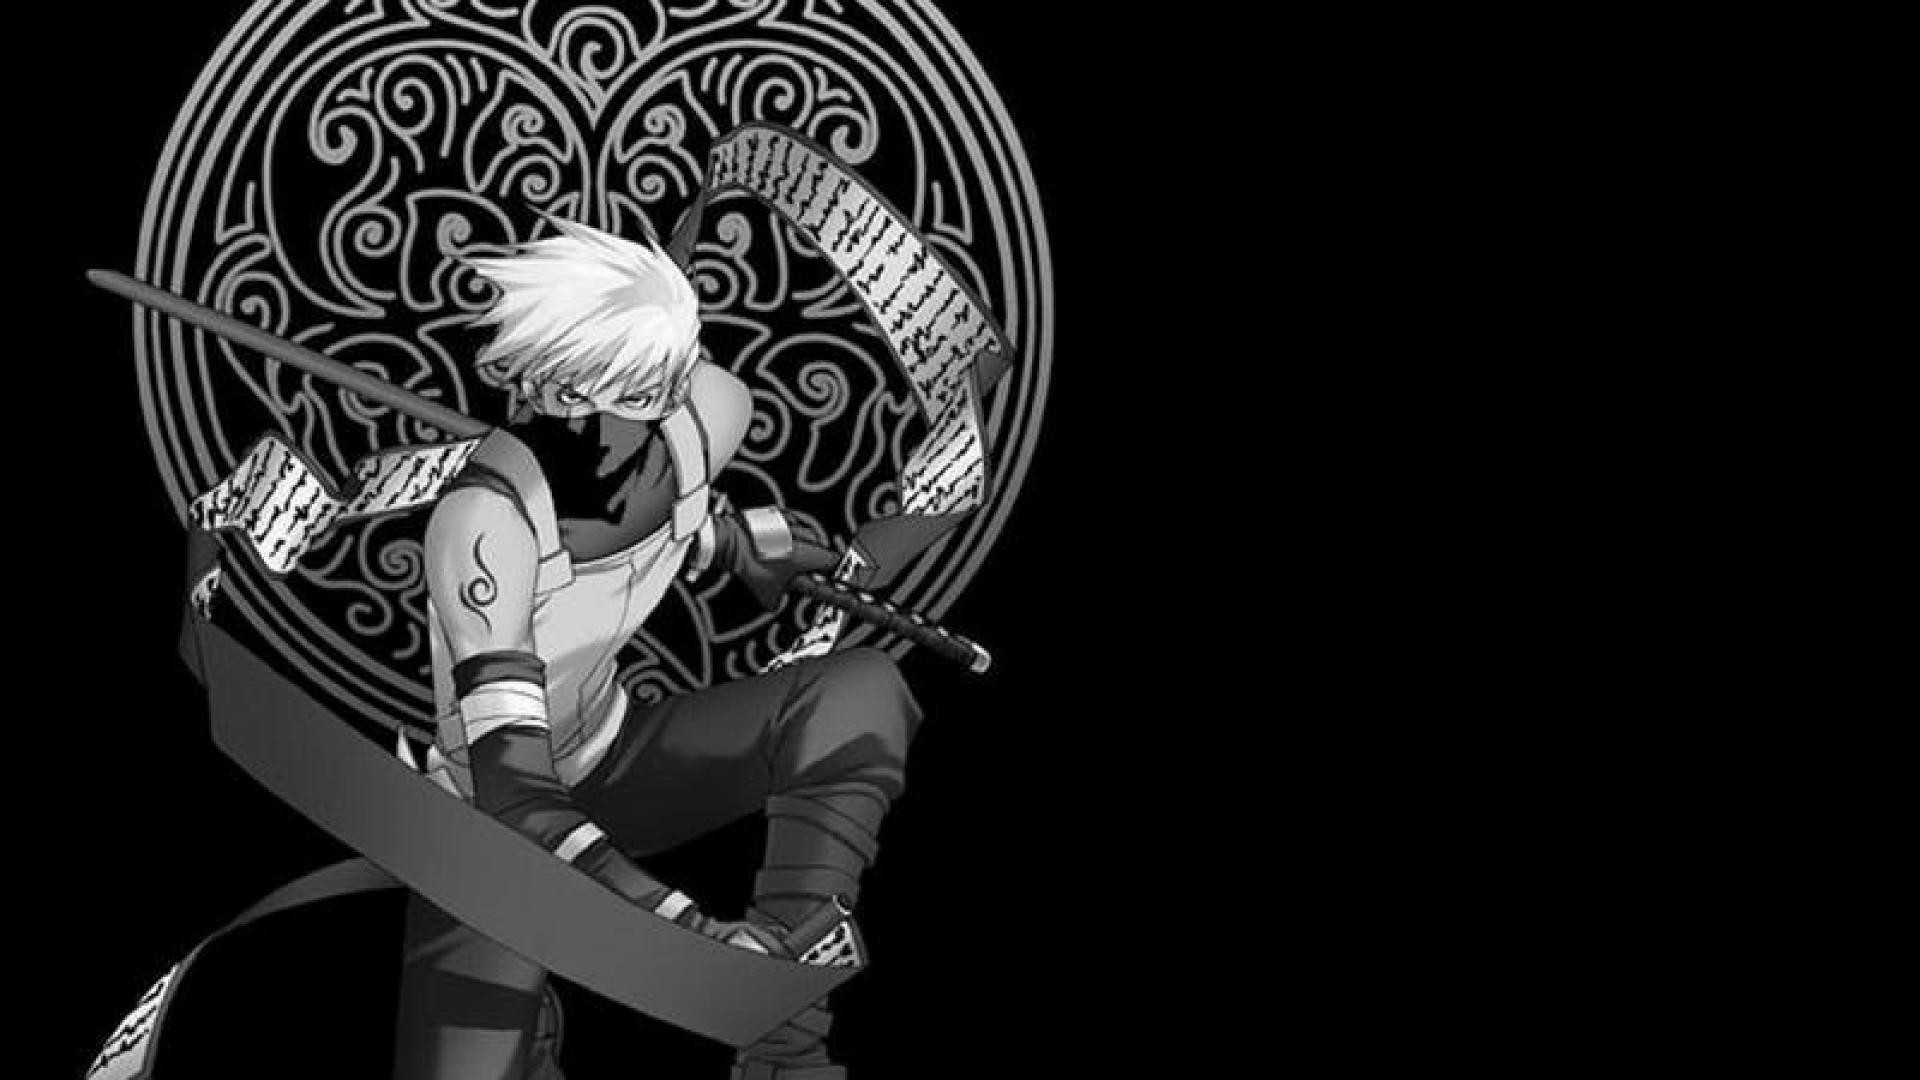 Black And White Naruto Wallpaper Posted By John Sellers